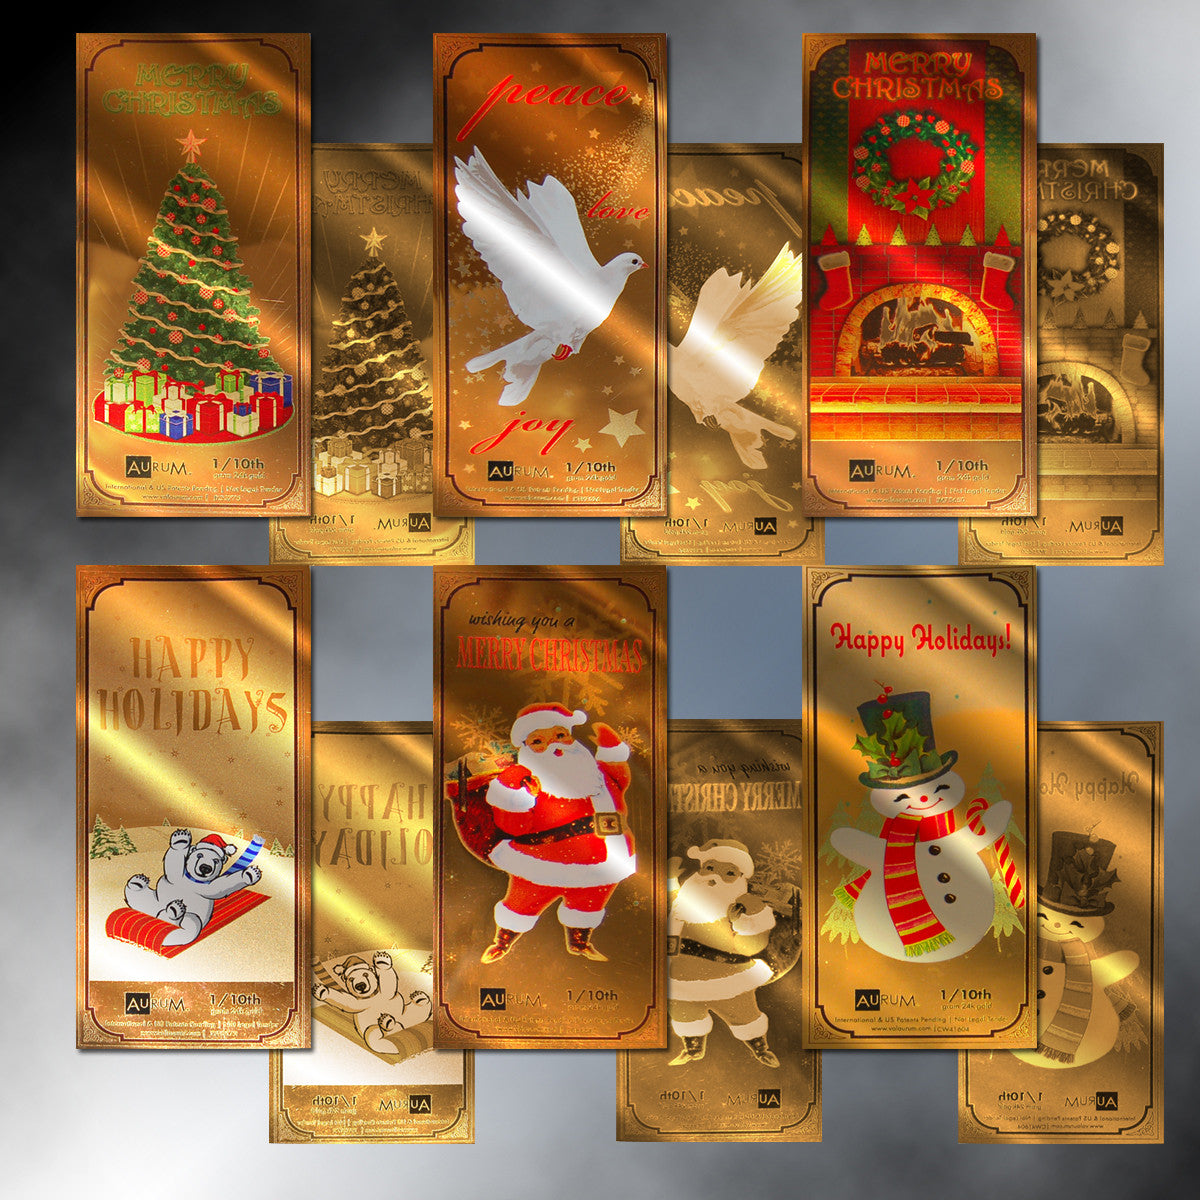 Set of 6 Holiday 1/10th Gram 24K Gold Aurum Notes